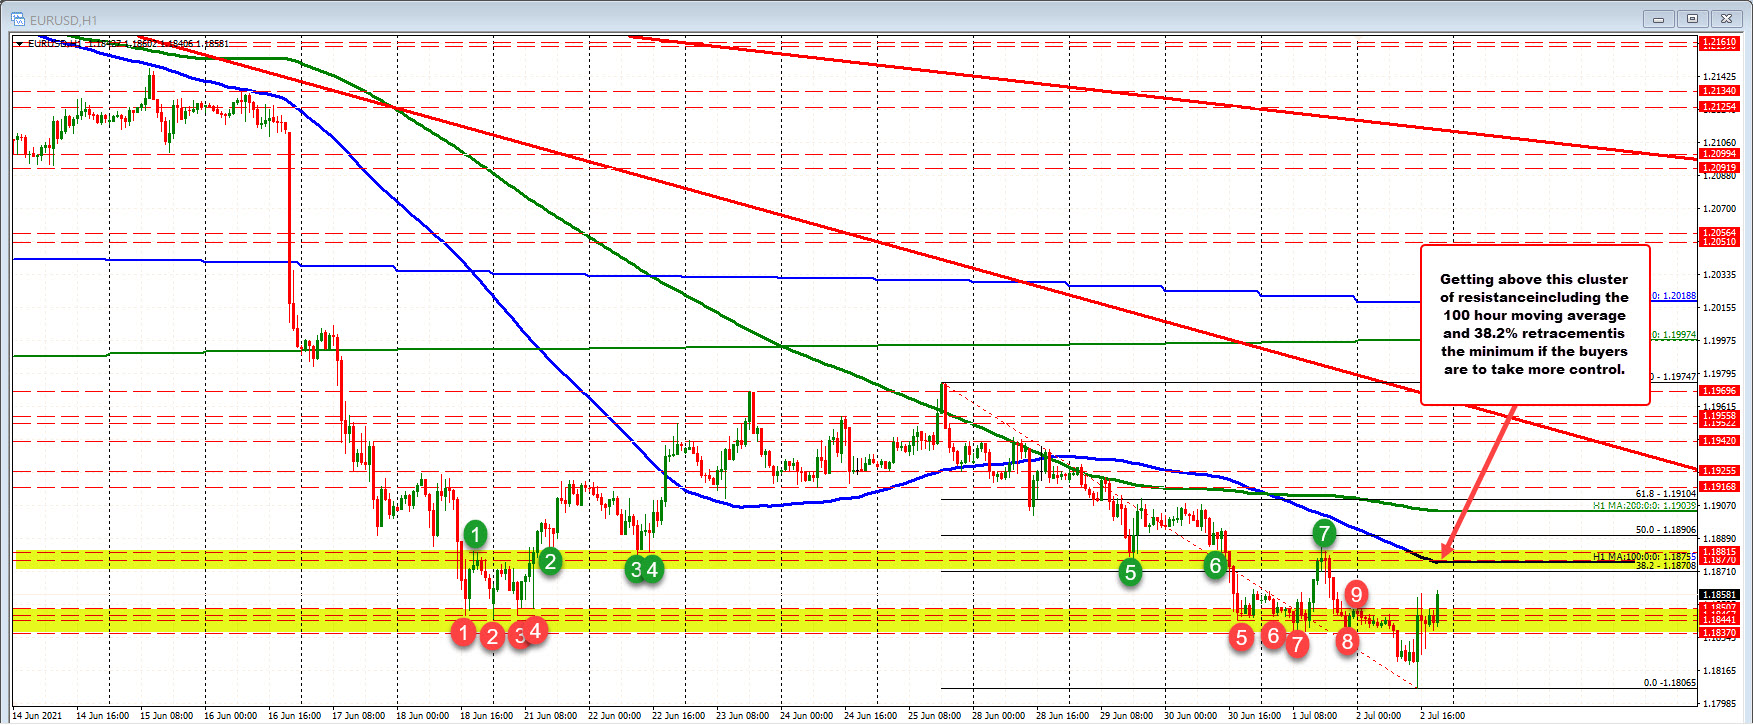 New highs for the EURUSD